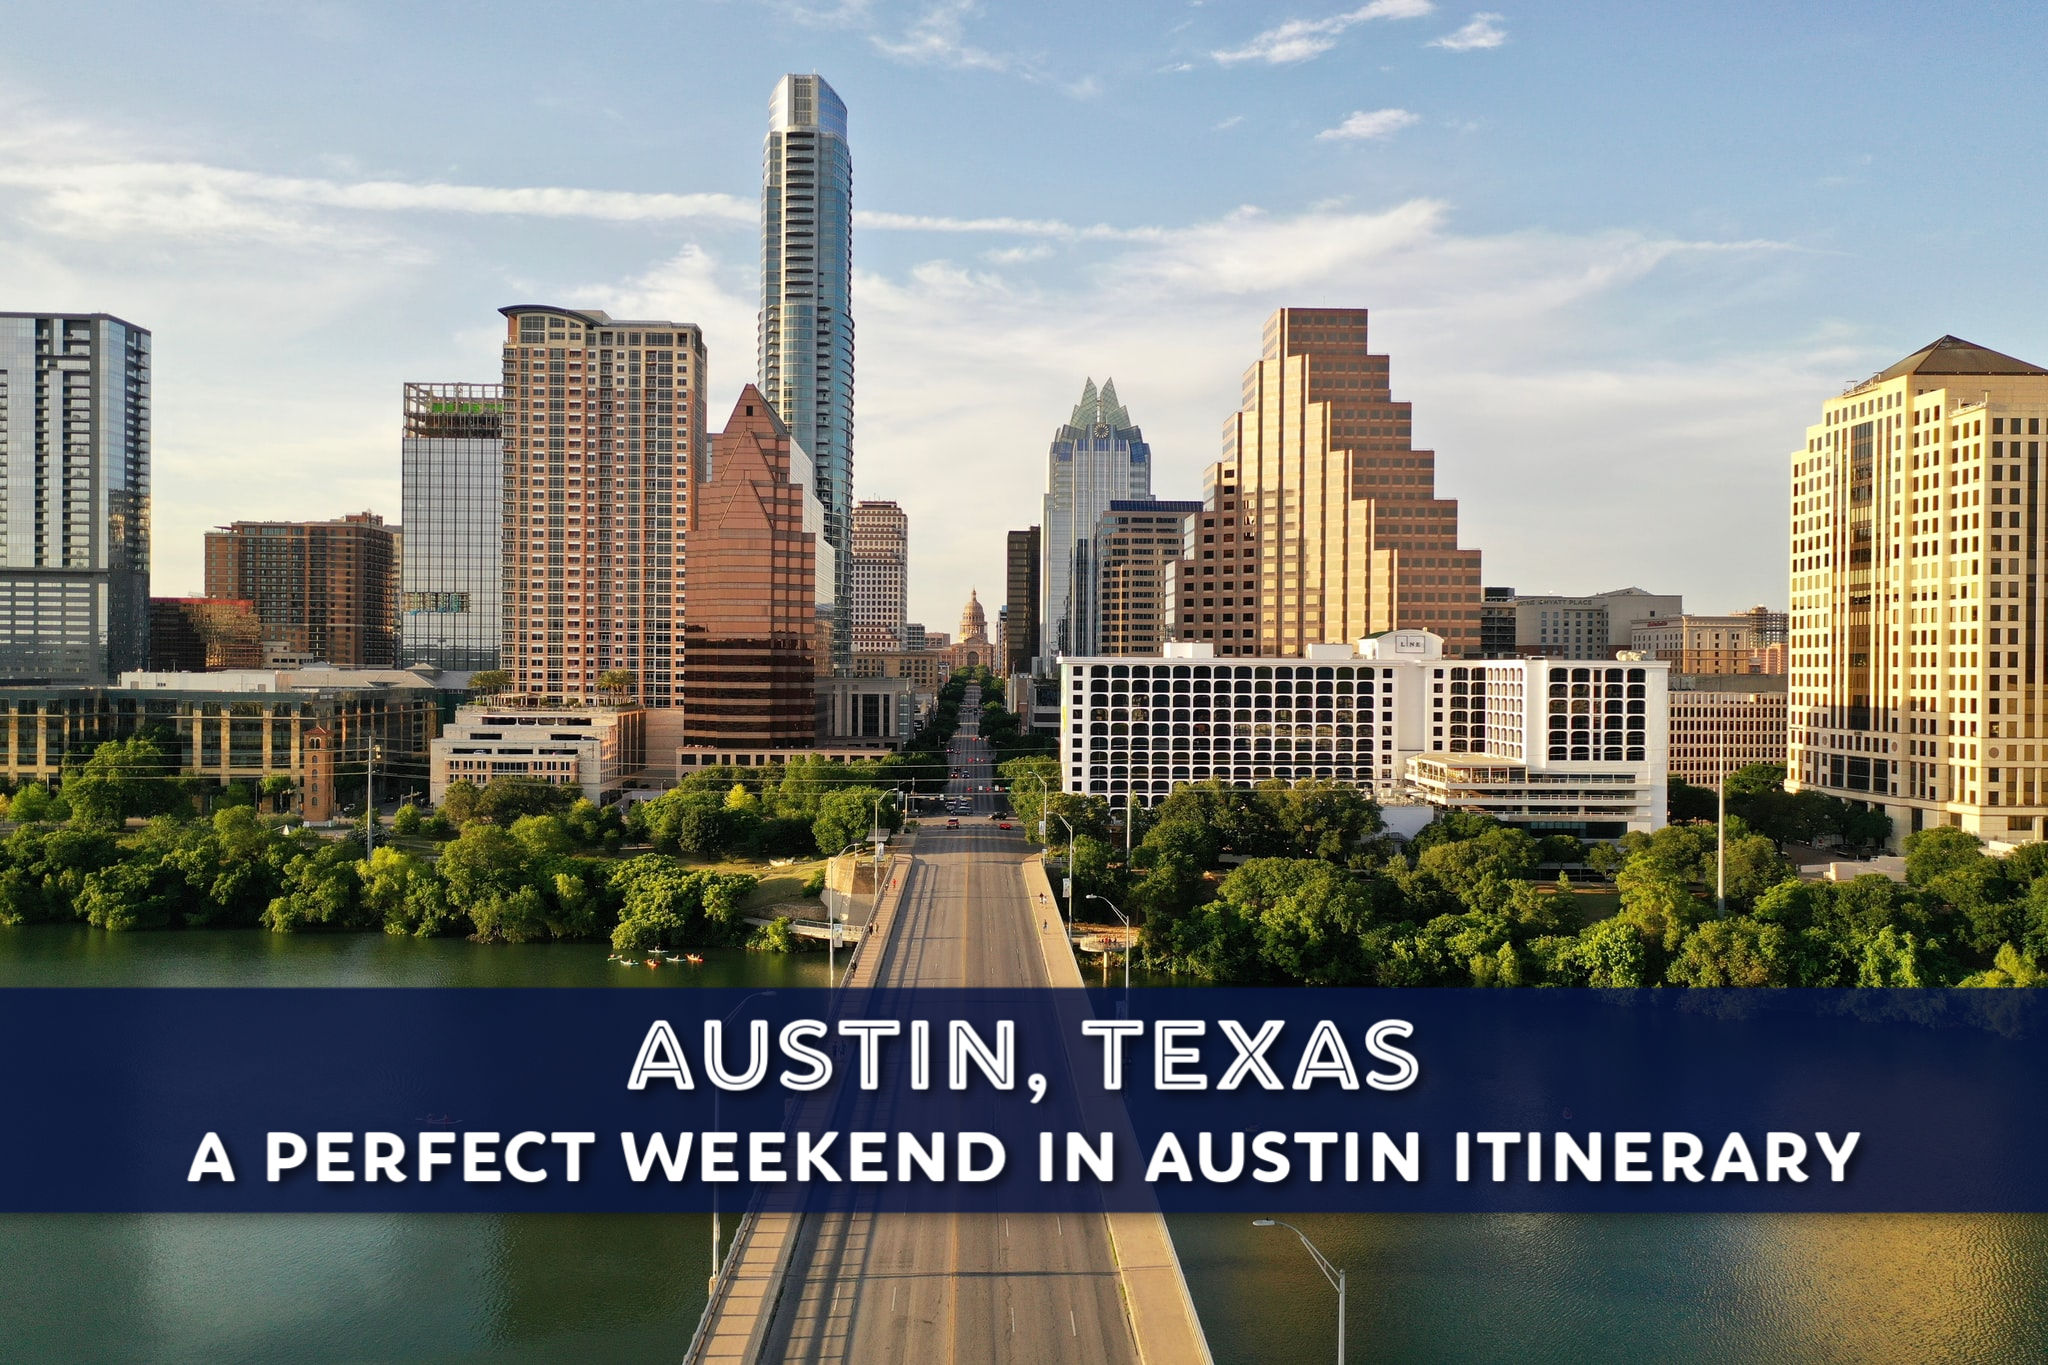 A Perfect Weekend in Austin Itinerary by JetSettingFools.com